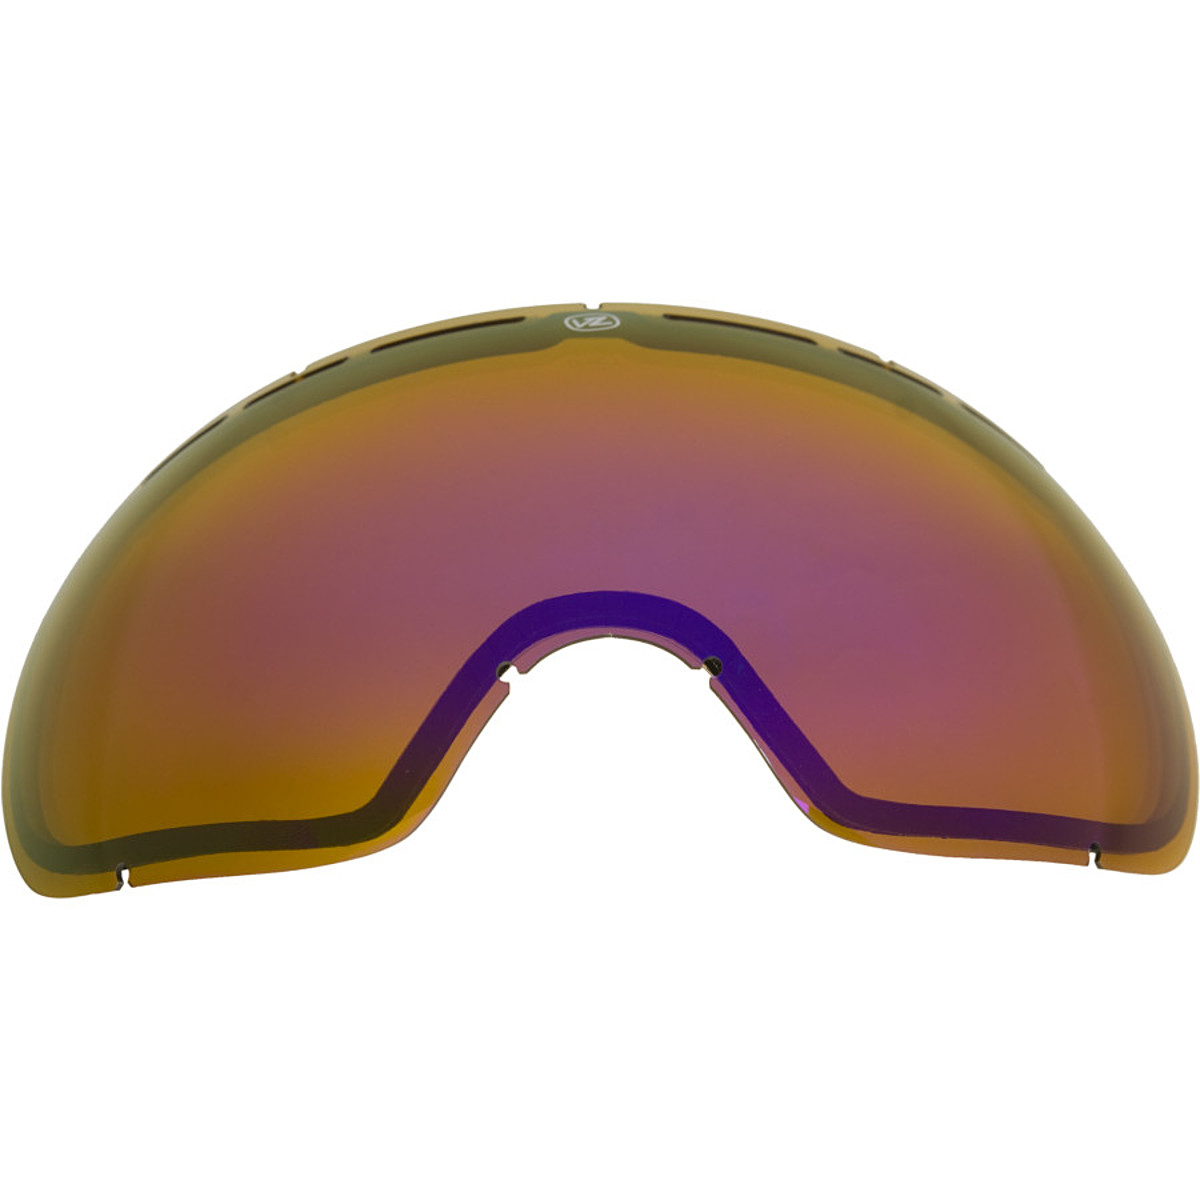 VonZipper Fishbowl Lens